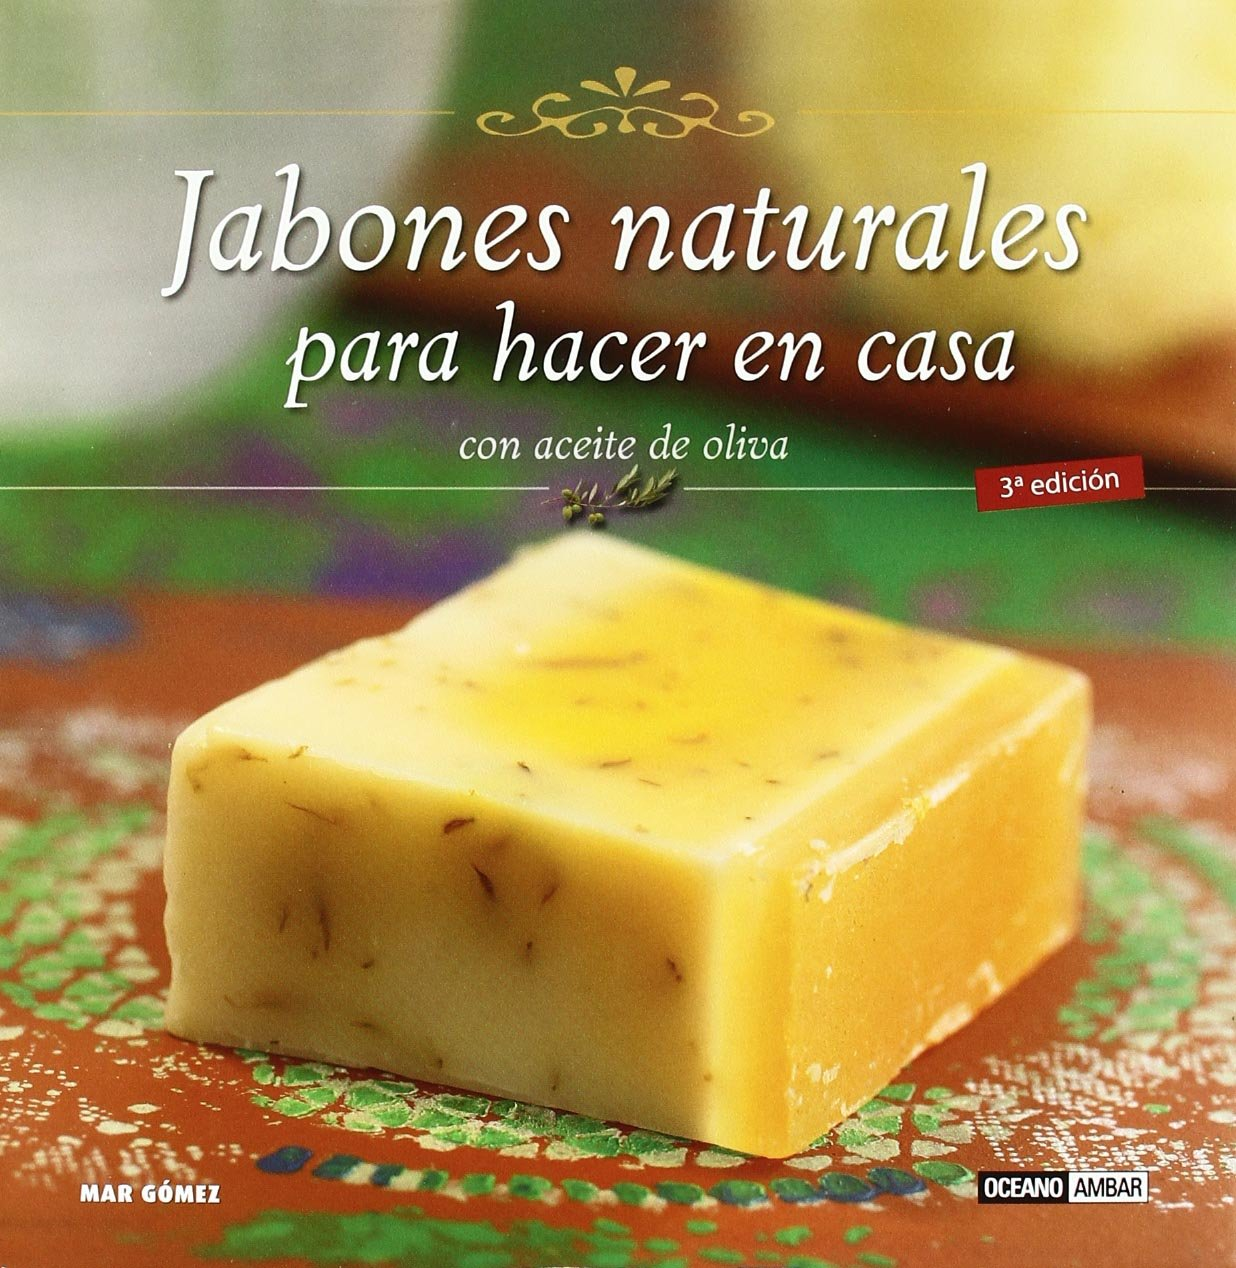 Jabones naturales para hacer en casa/ Make Natural Soap At Home: Con aceite de oliva/ With Olive Oil (Spanish Edition) (Spanish) Hardcover – May 30, 2009